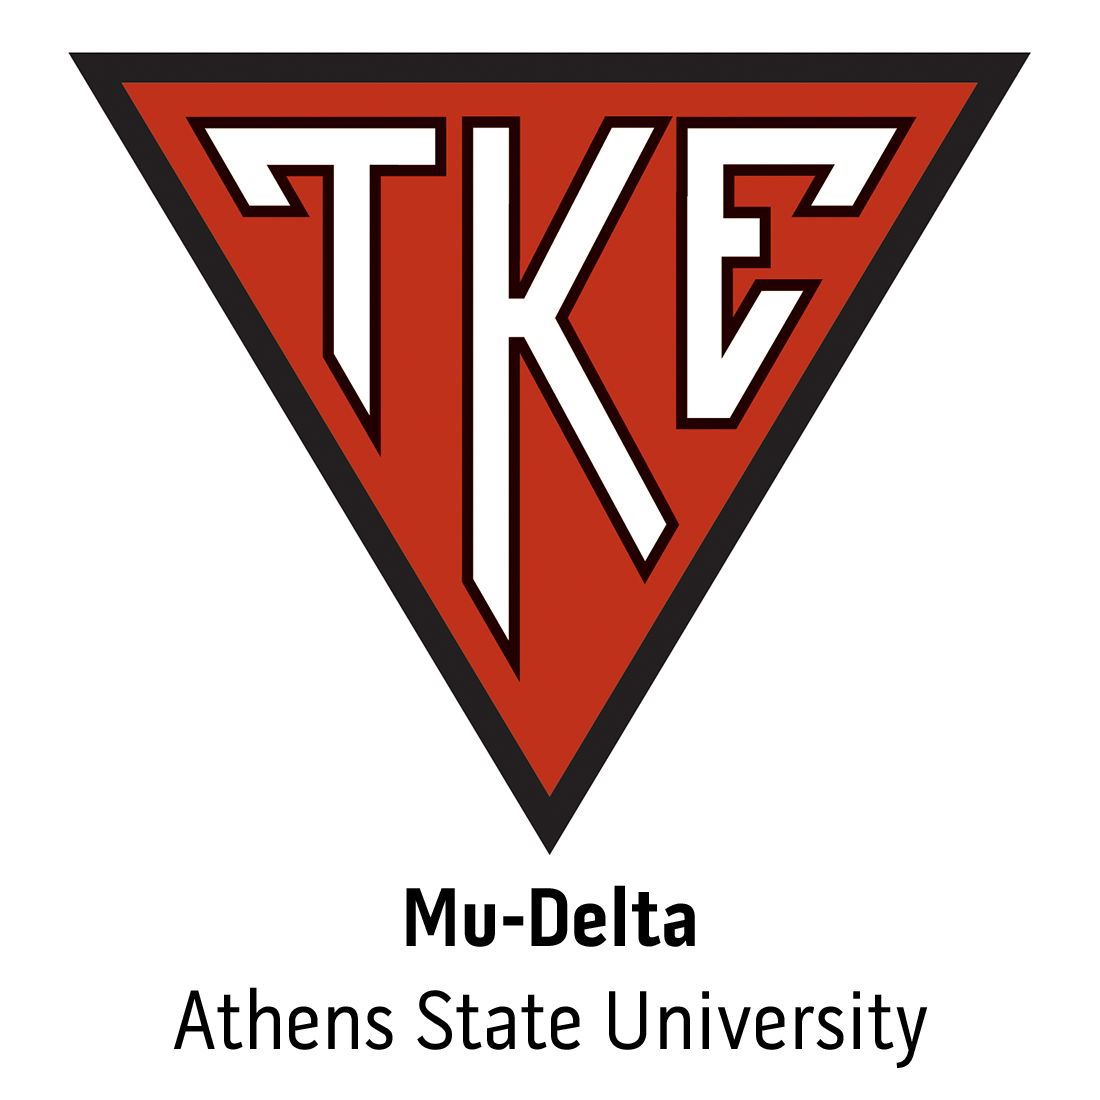 Mu-Delta Chapter at Athens State University